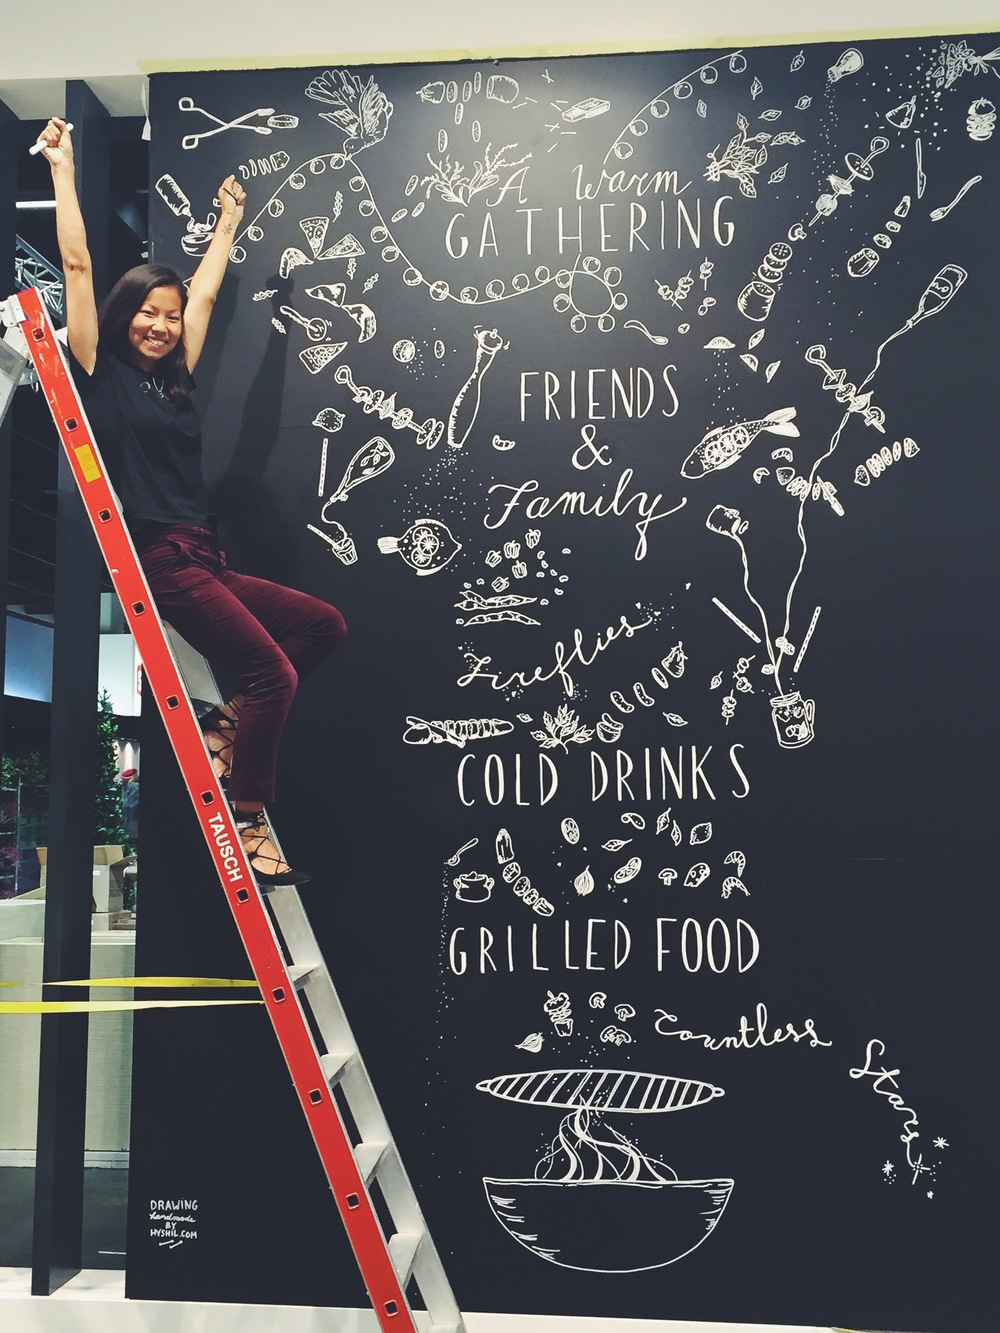 Blackboard drawing (2,5m x 5m) in Cologne, Germany